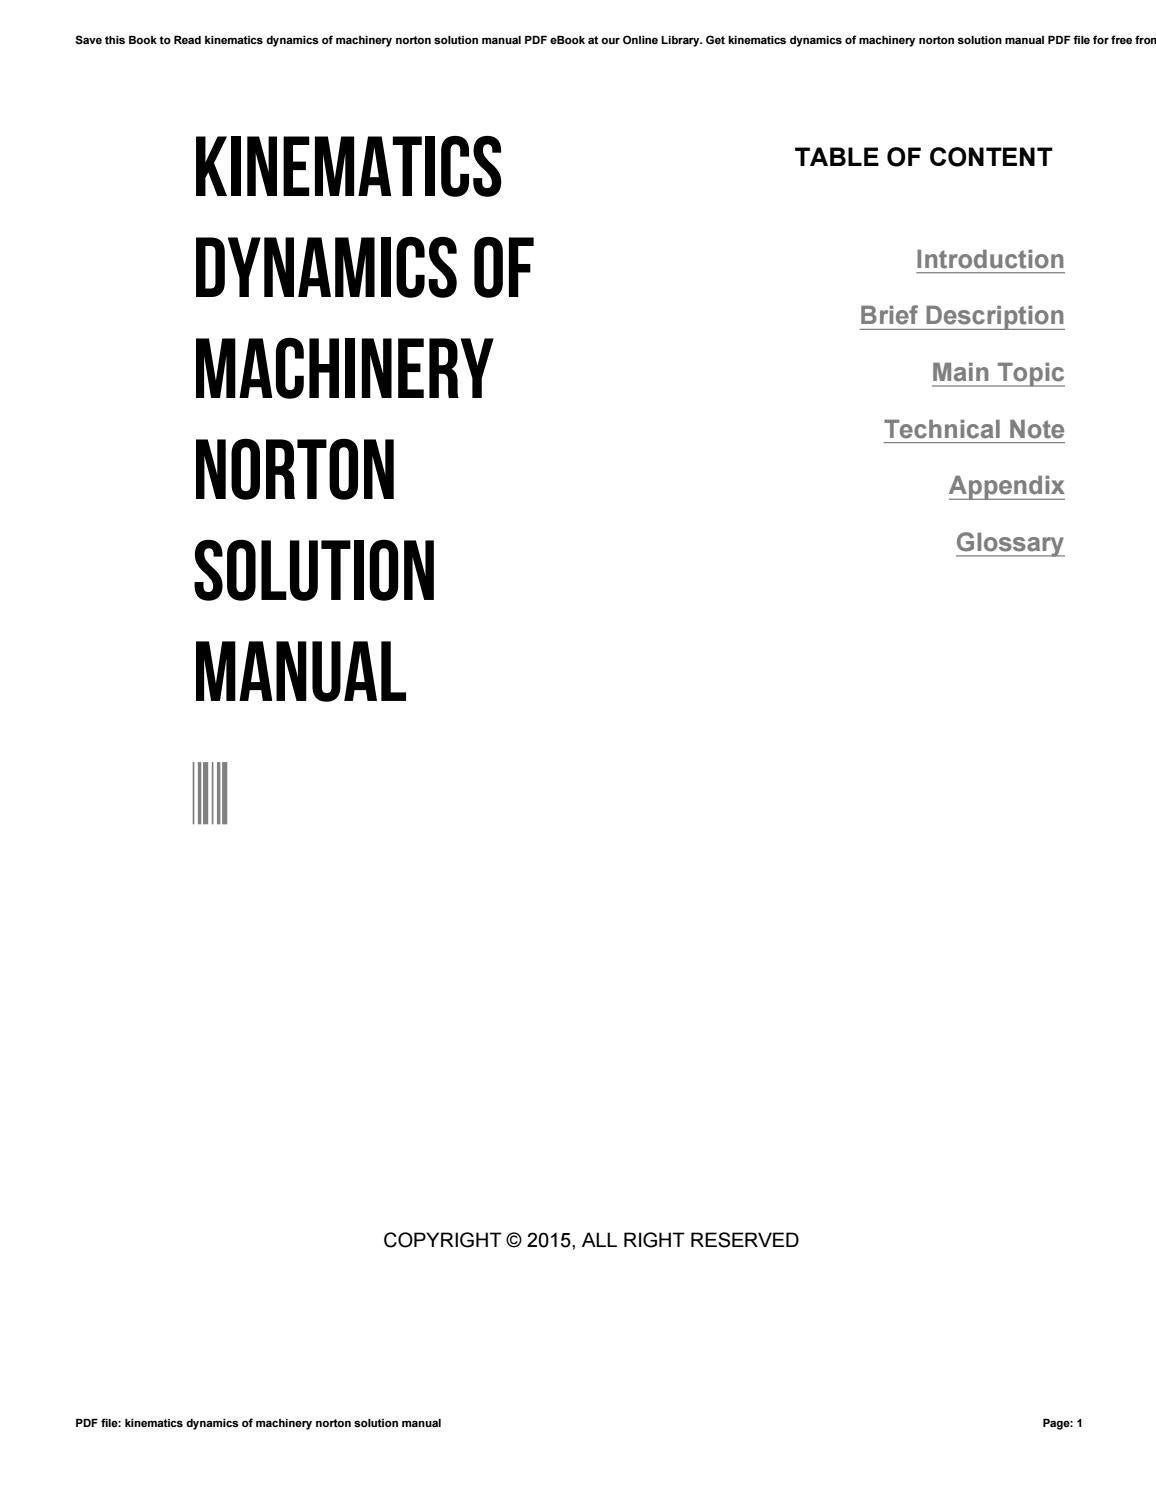 Kinematics dynamics of machinery norton solution manual by lordsofts2 -  issuu